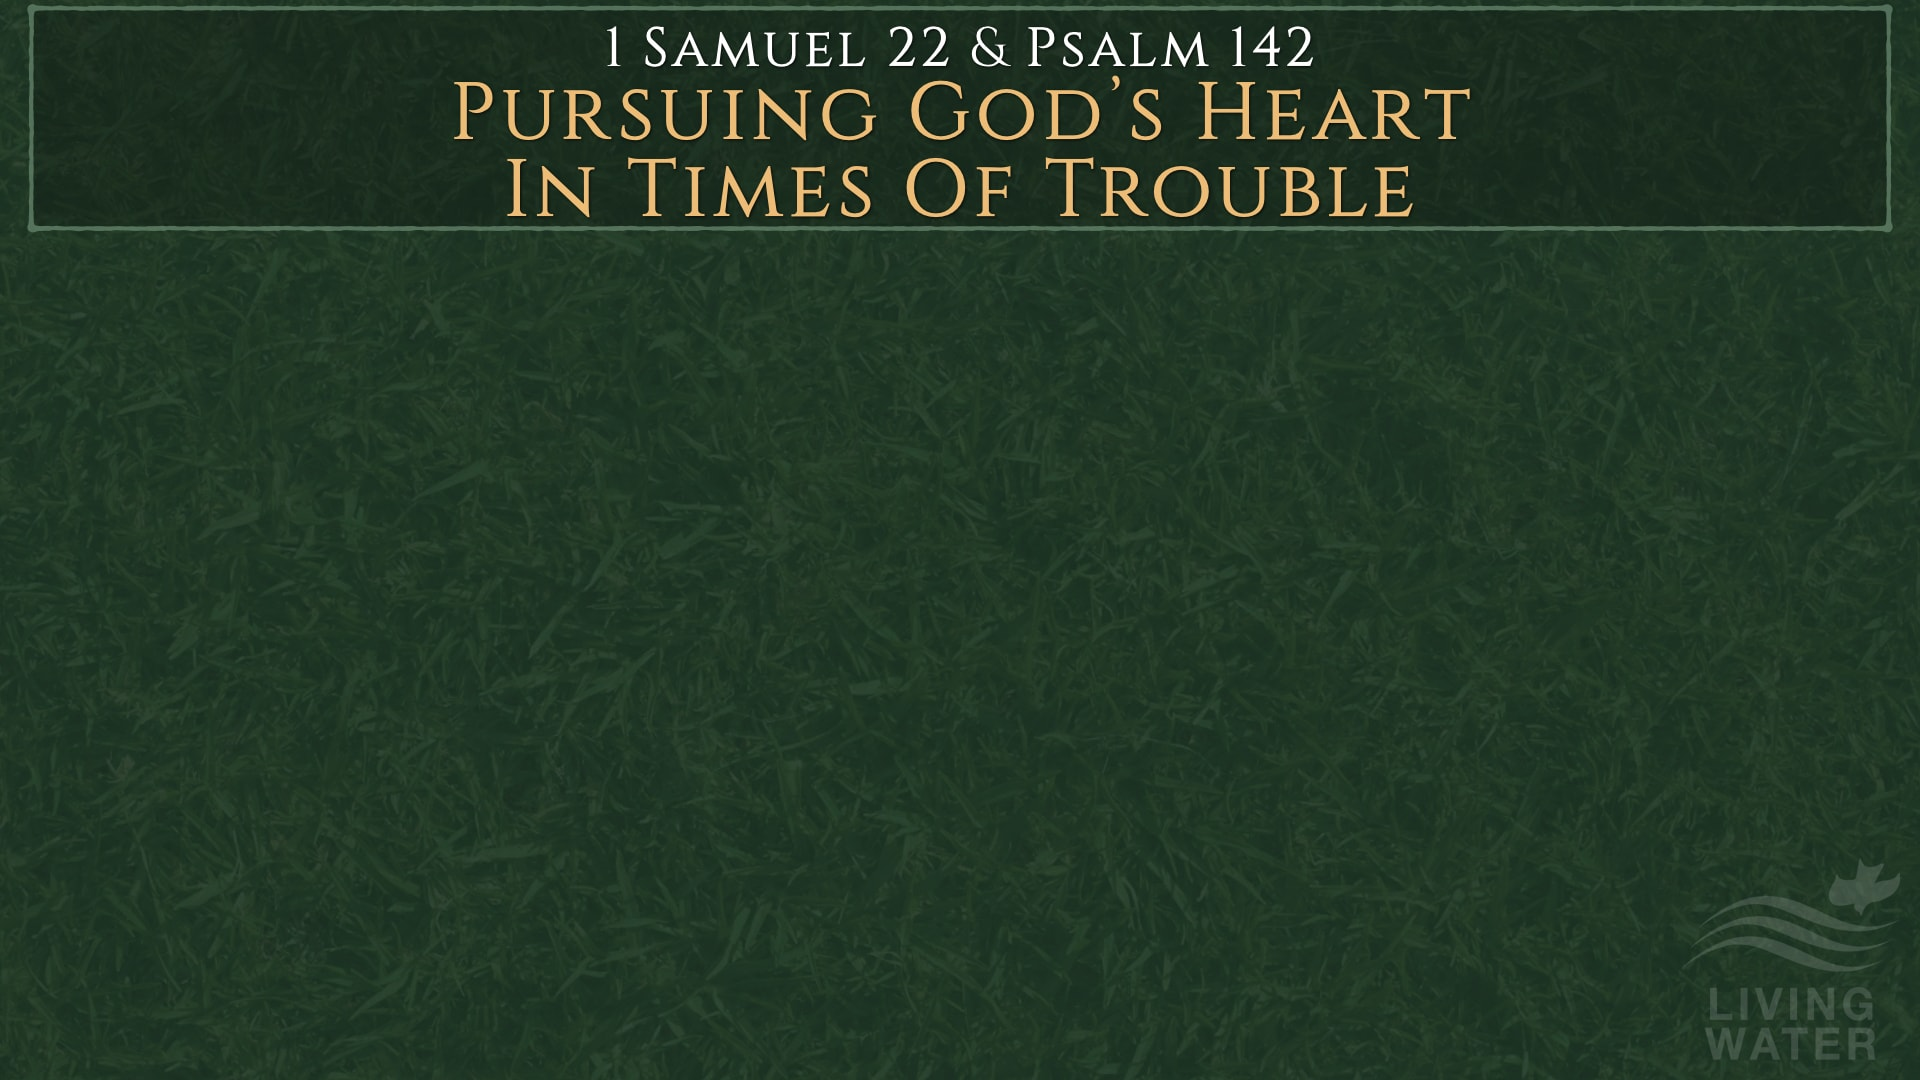 1 Samuel 22:1-5, Pursuing God's Heart In Times Of Trouble